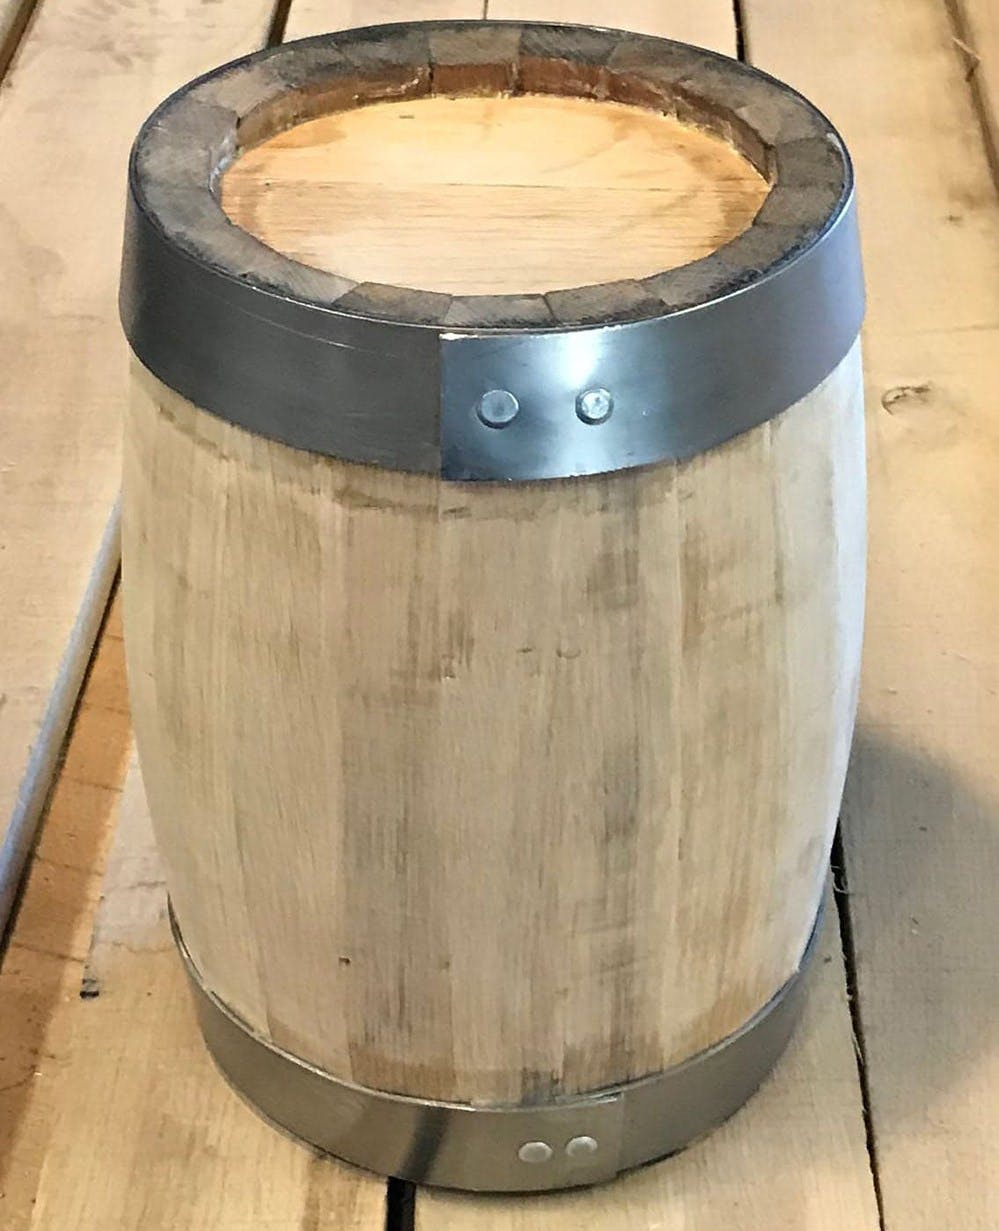 1/2 Gallon Barrel - sold by Anthony Barrel Company